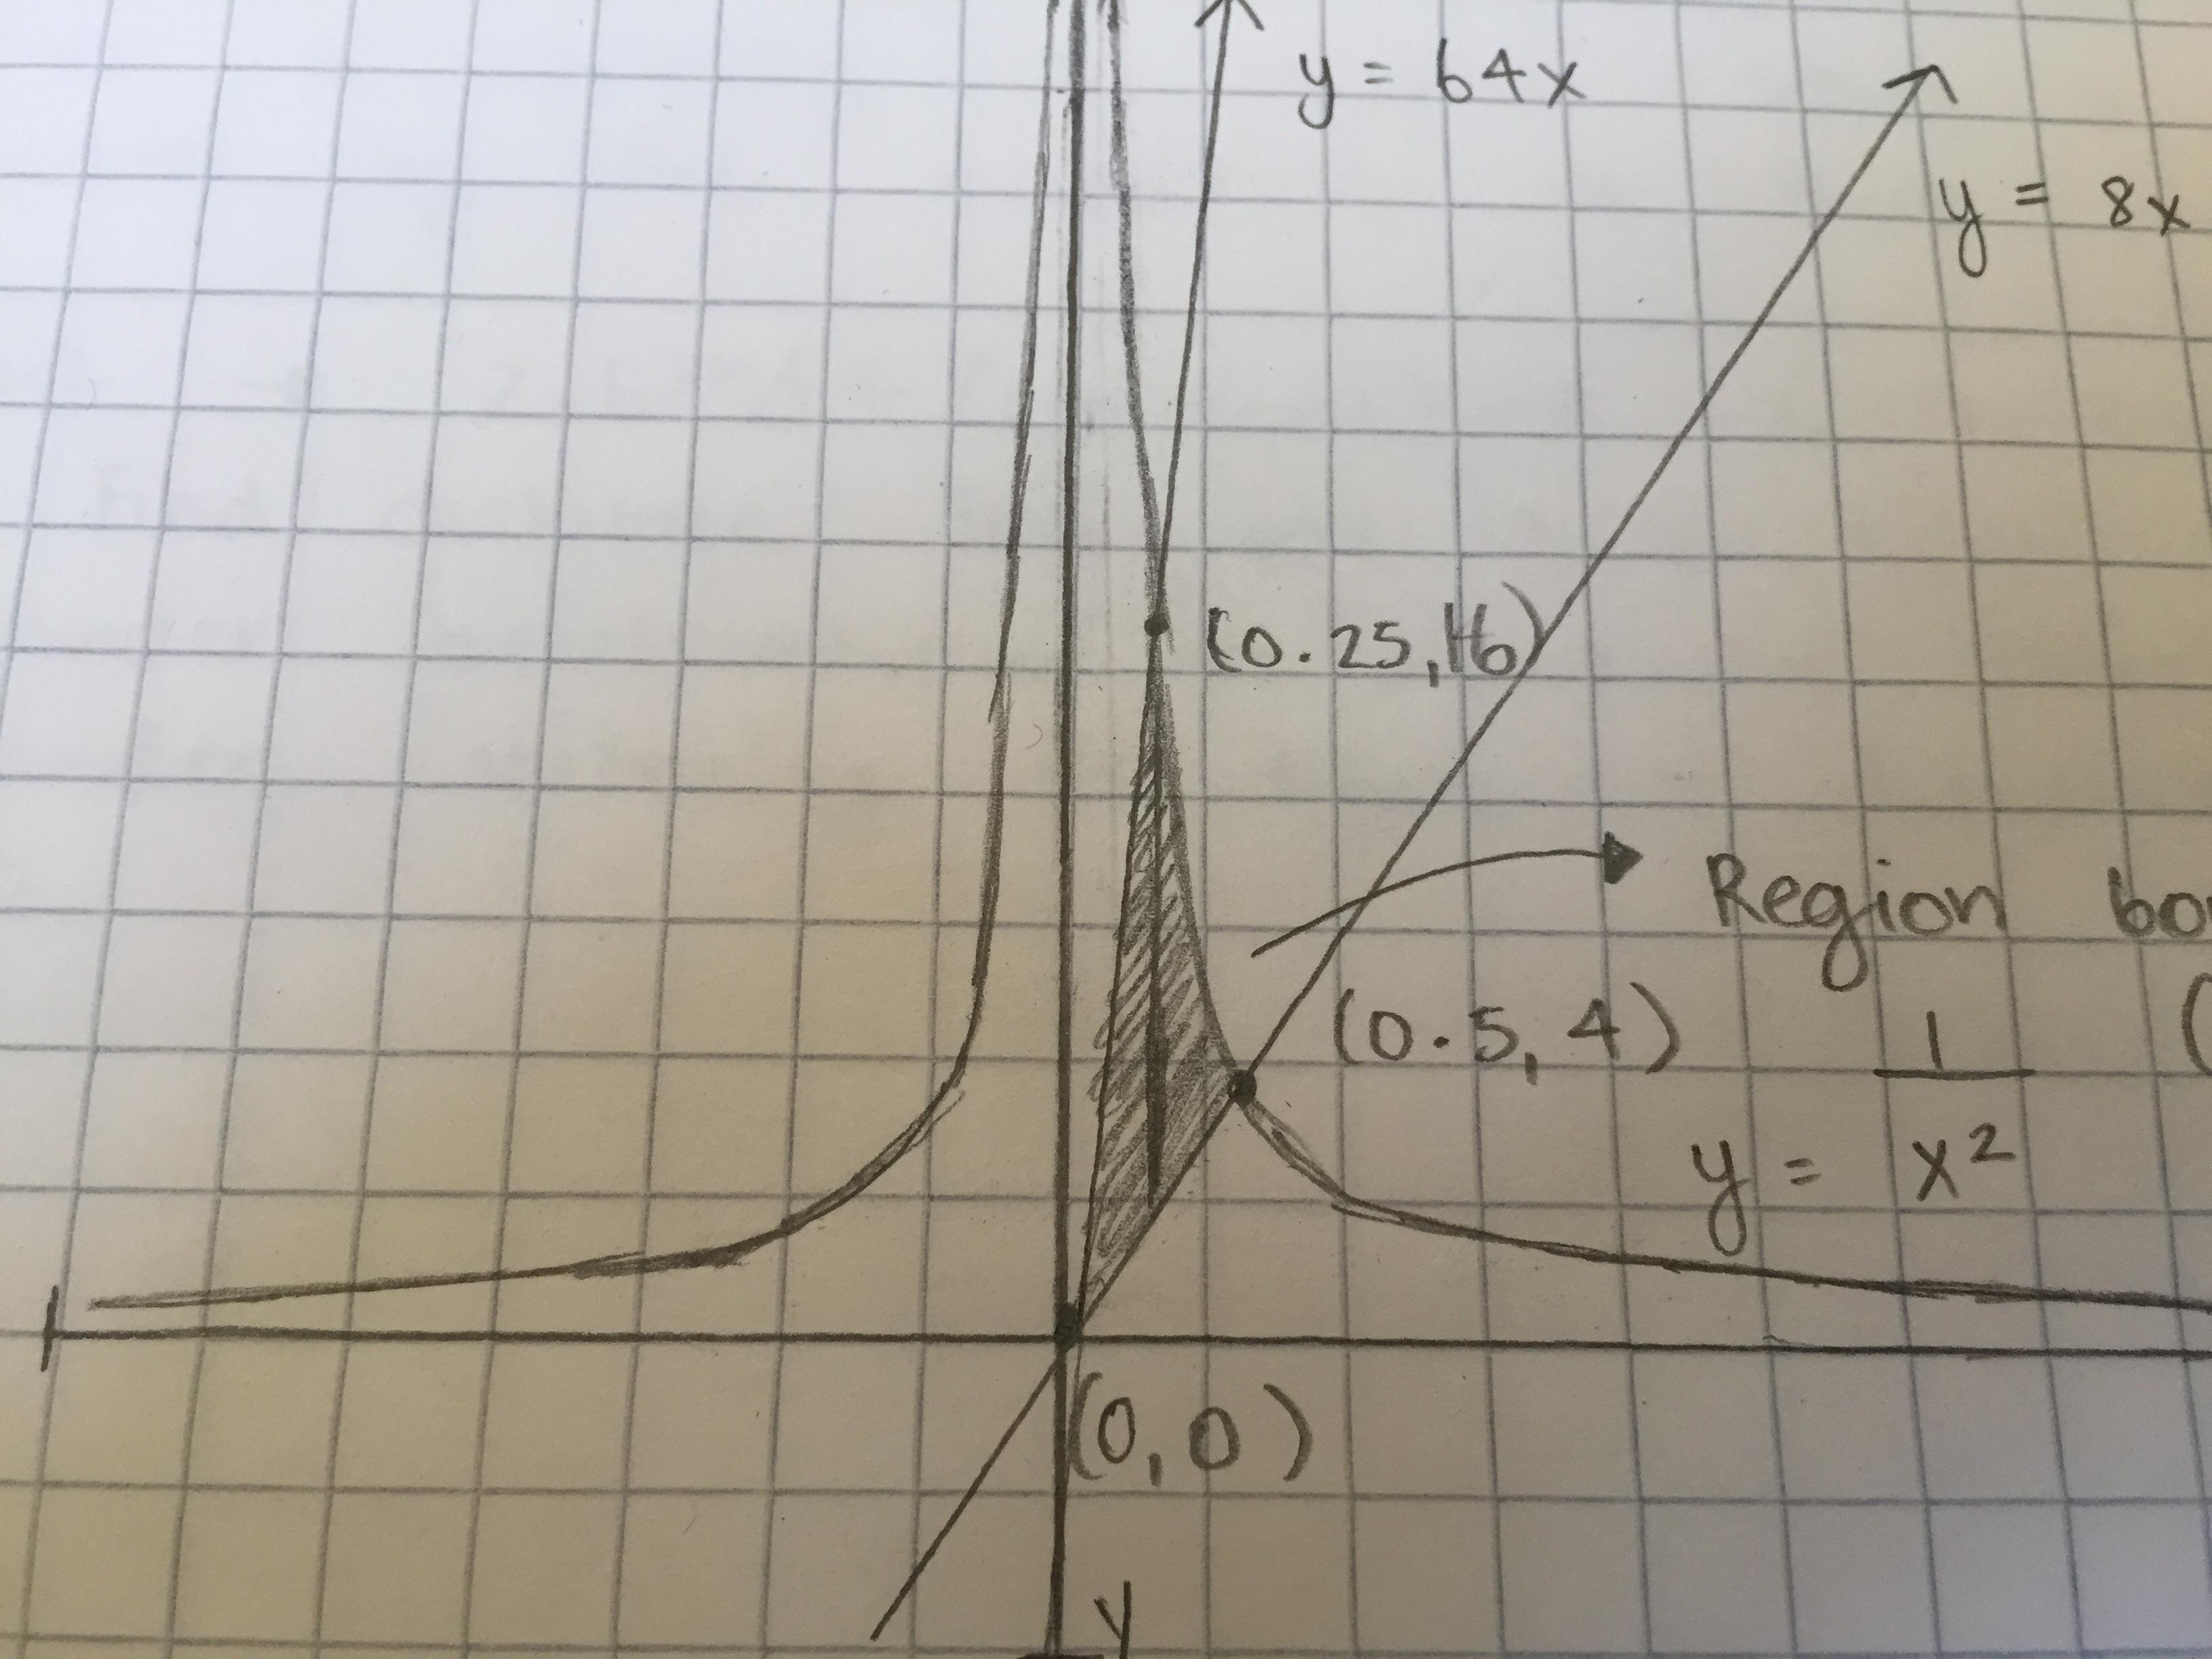 Sketch The Region Bounded By Three Curves